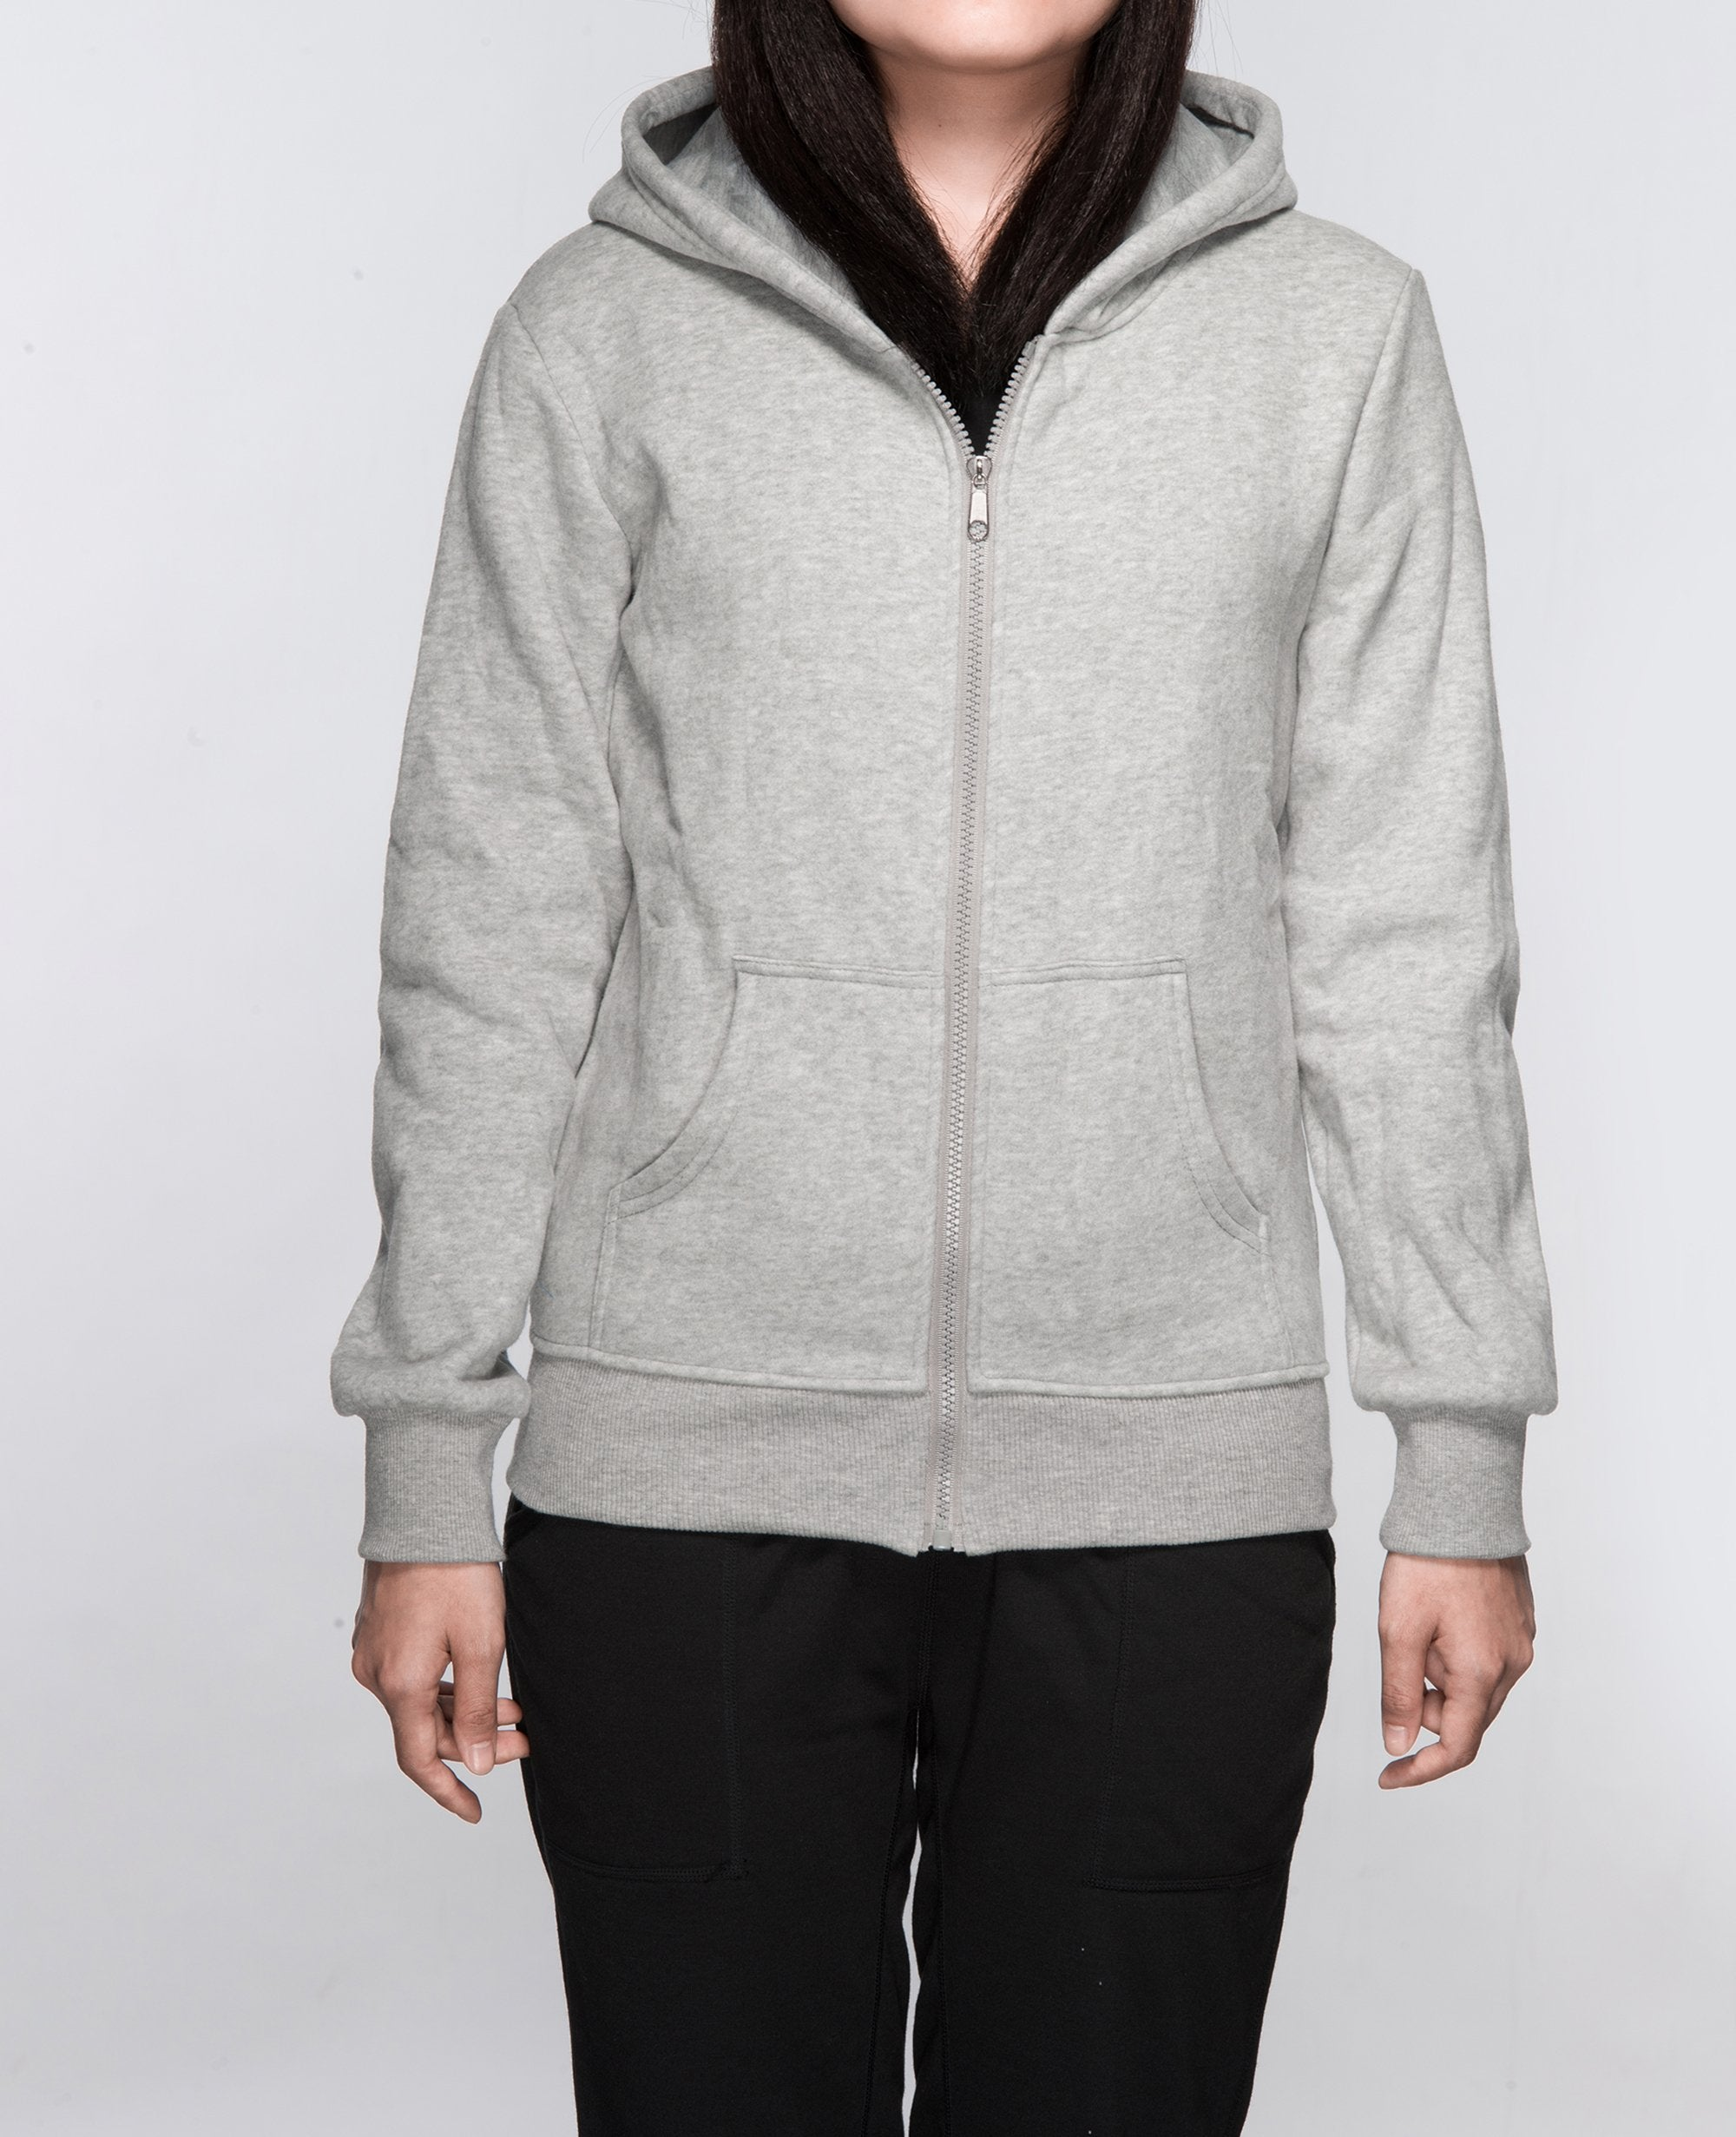 Unisex Basic Hoodies in Gray - Hoodies - BRANMA - BRANMA